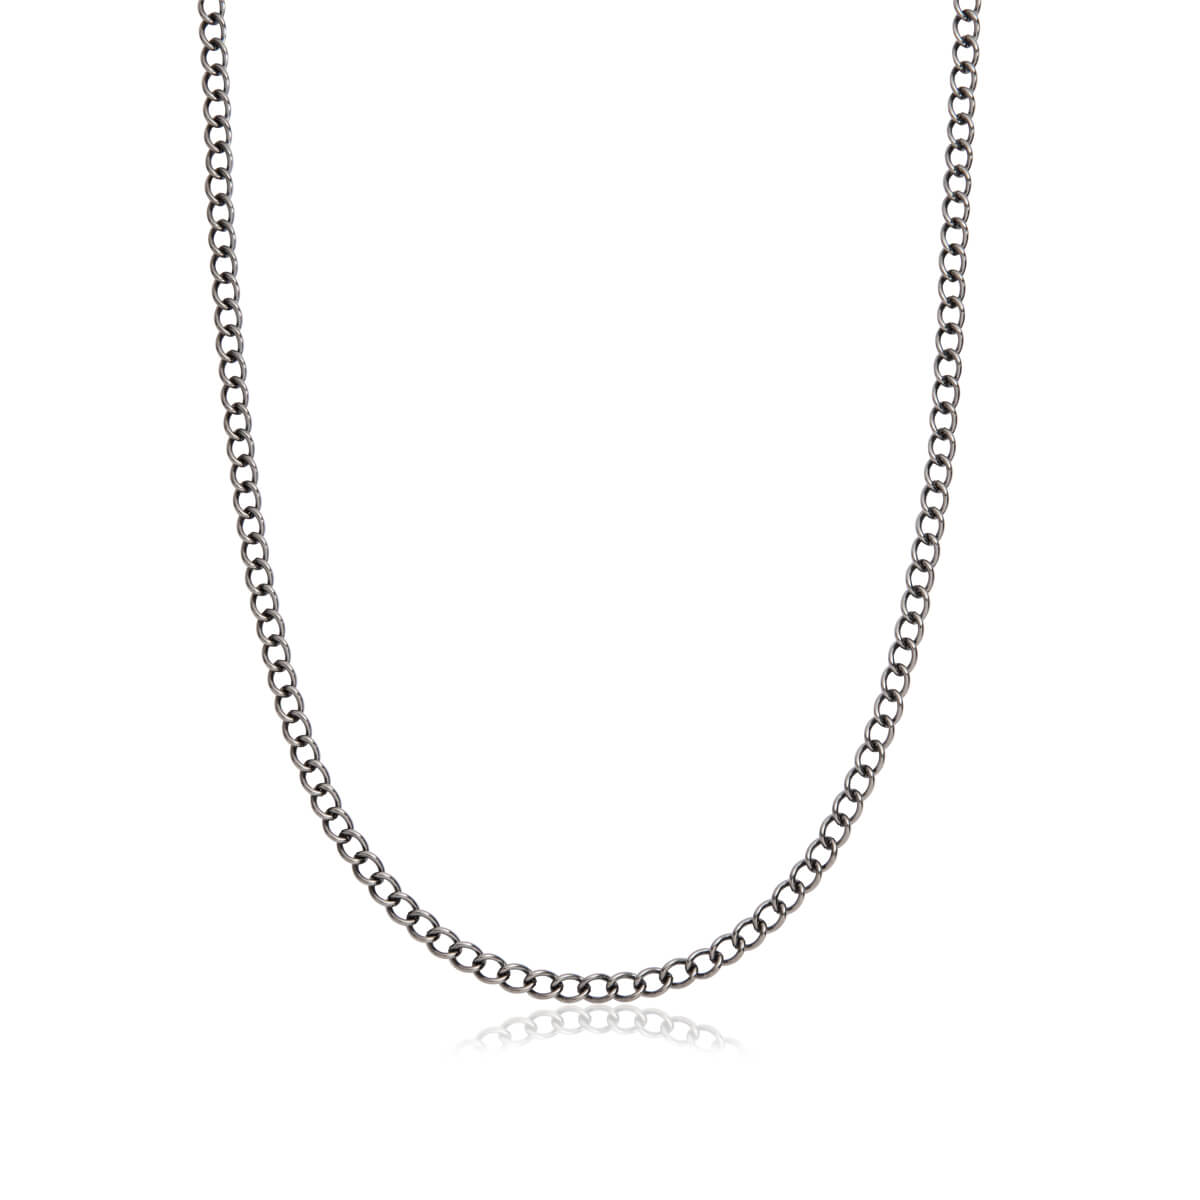 Selected Curb Chain Necklace 20 in (Gun Silver)